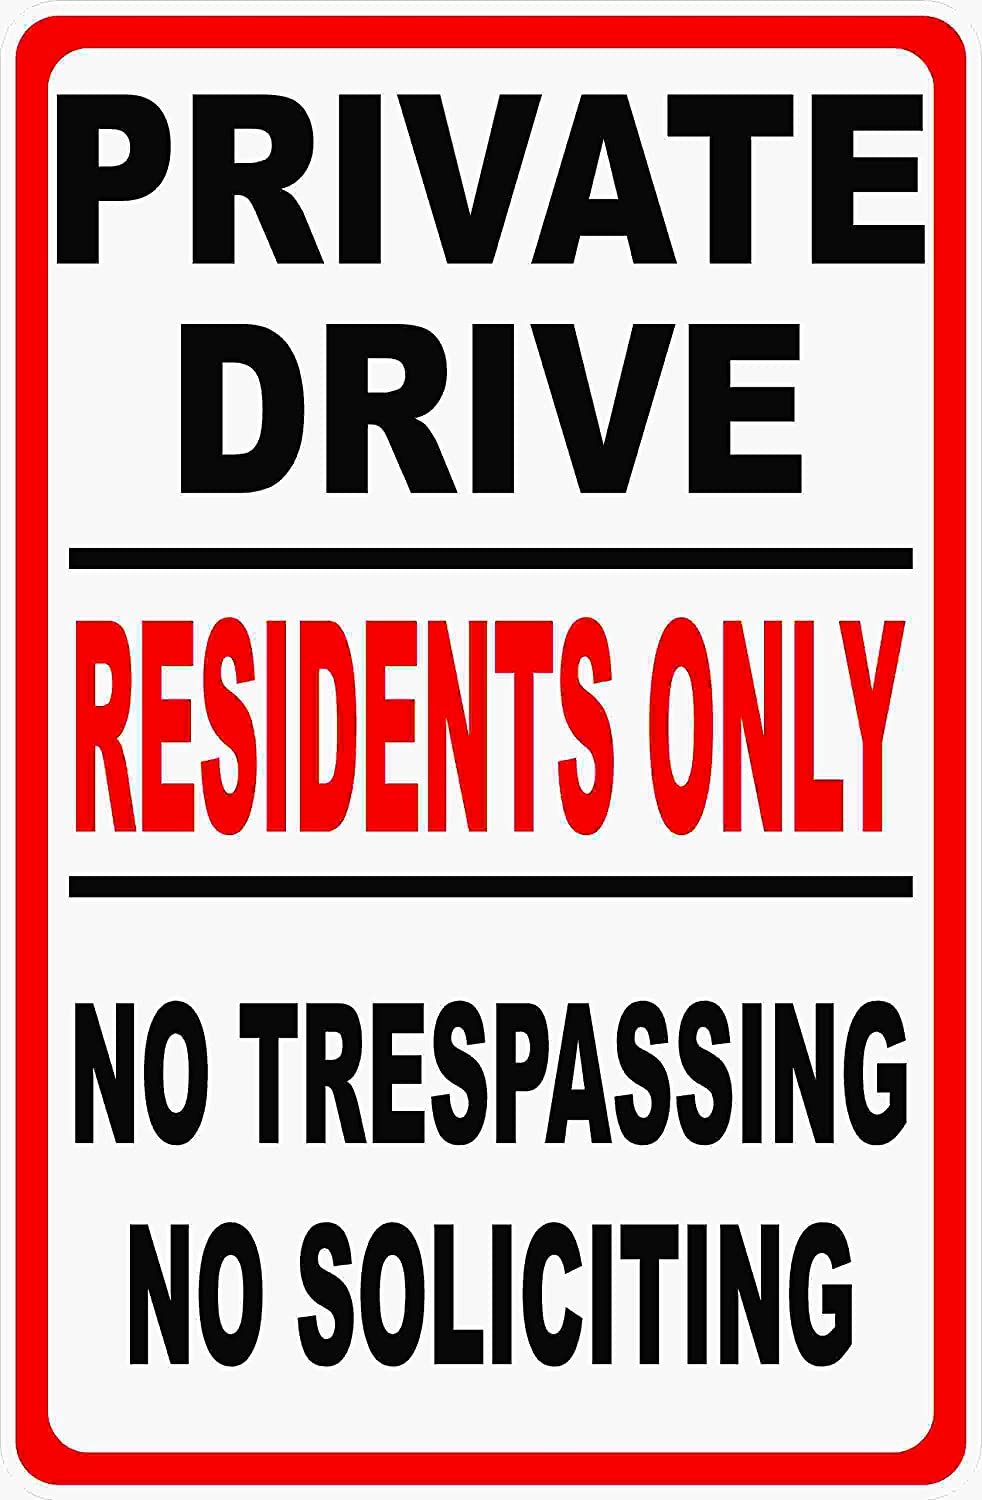 Made in the U.S.A. 12x18 Metal Private Drive Residents Only Sign No Trespassing Soliciting